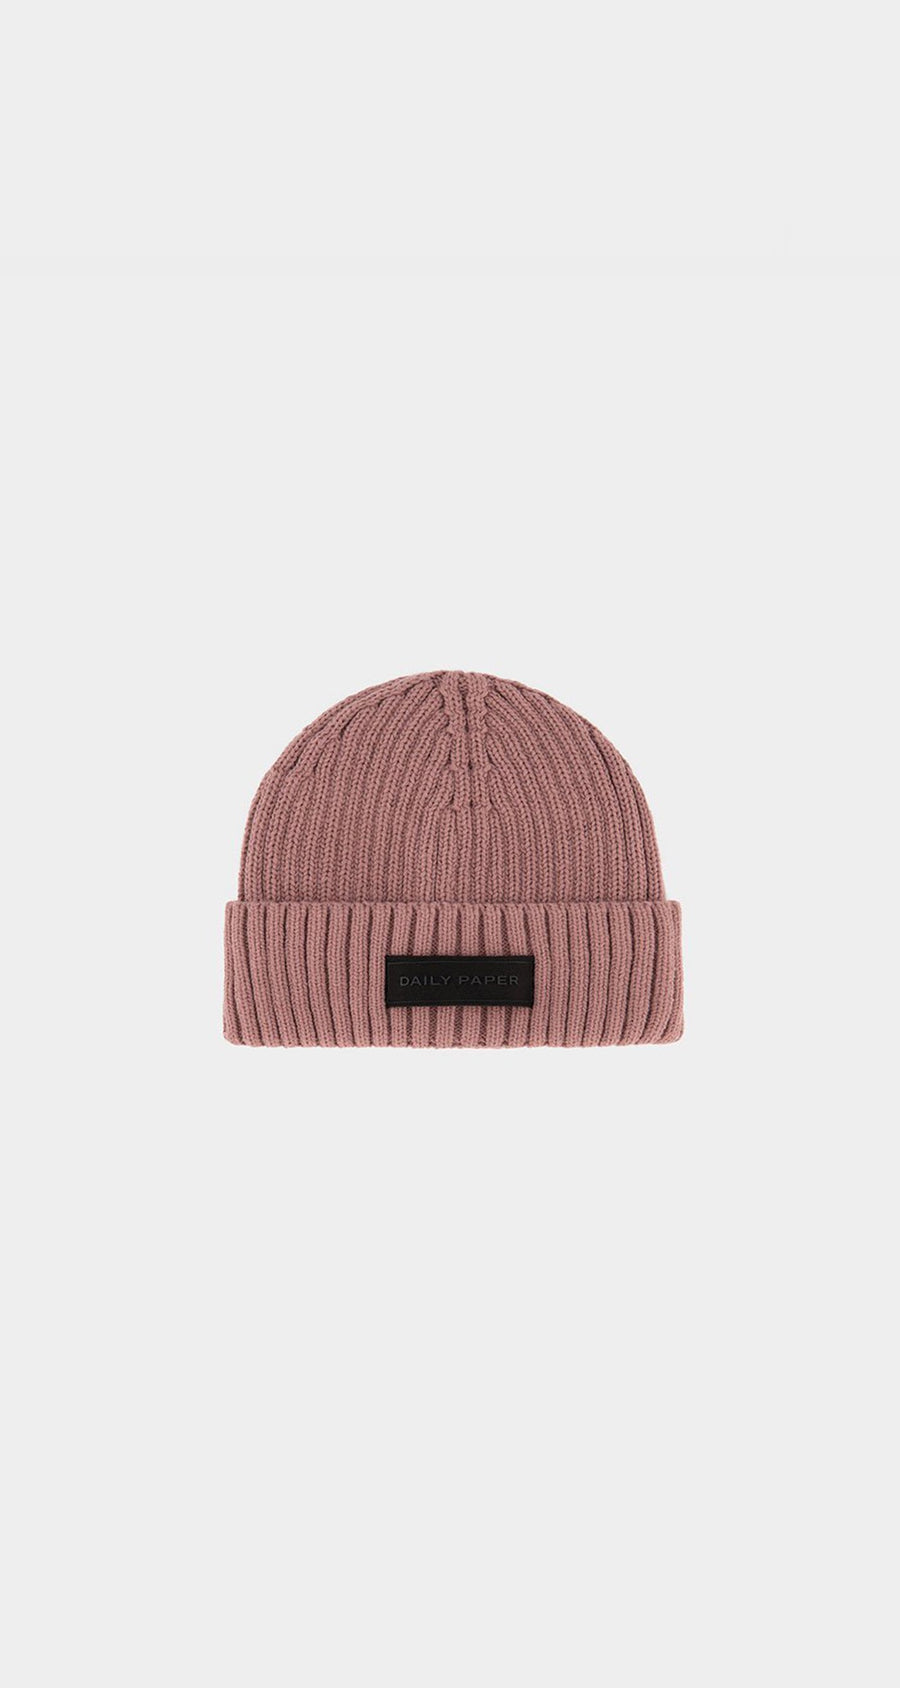 Daily Paper - Mauve Pink Essential Beanie - Front